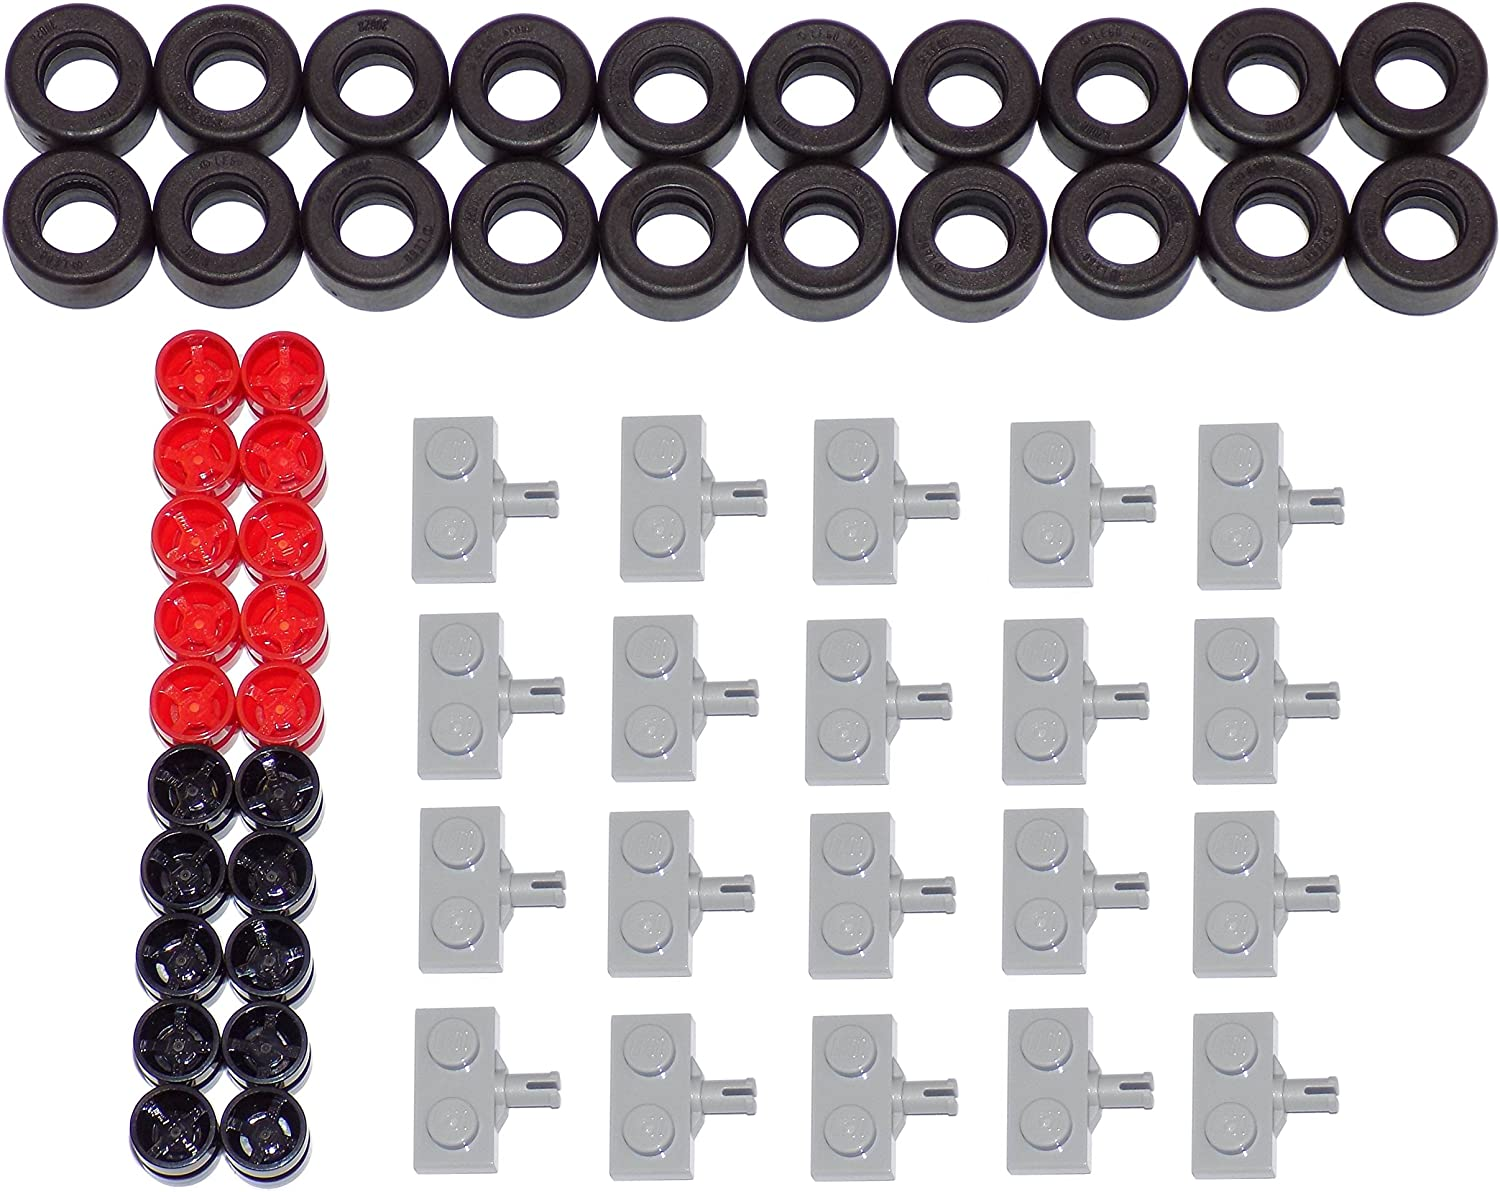 LEGO Parts and Pieces: 14x9mm Black Tire, Black Wheel, Red Wheel, 1x2 Light Gray Wheel Holders Pack - 60 Pieces